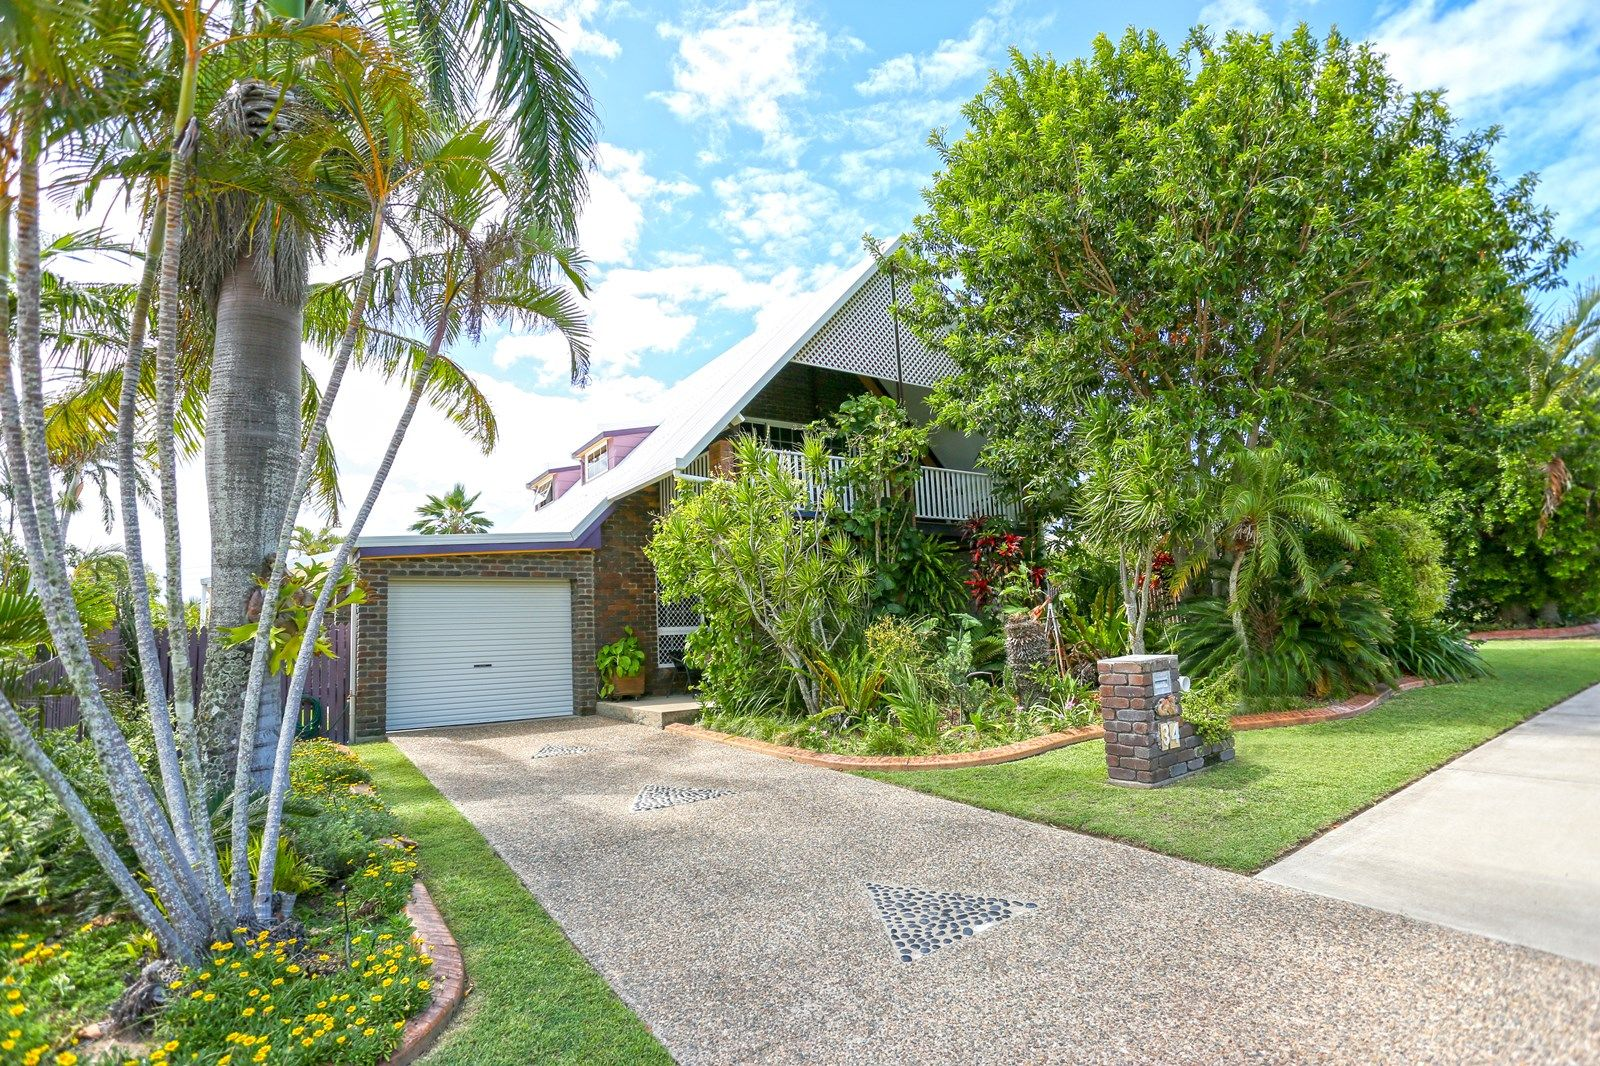 34 South Pacific Ave, Slade Point QLD 4740, Image 1